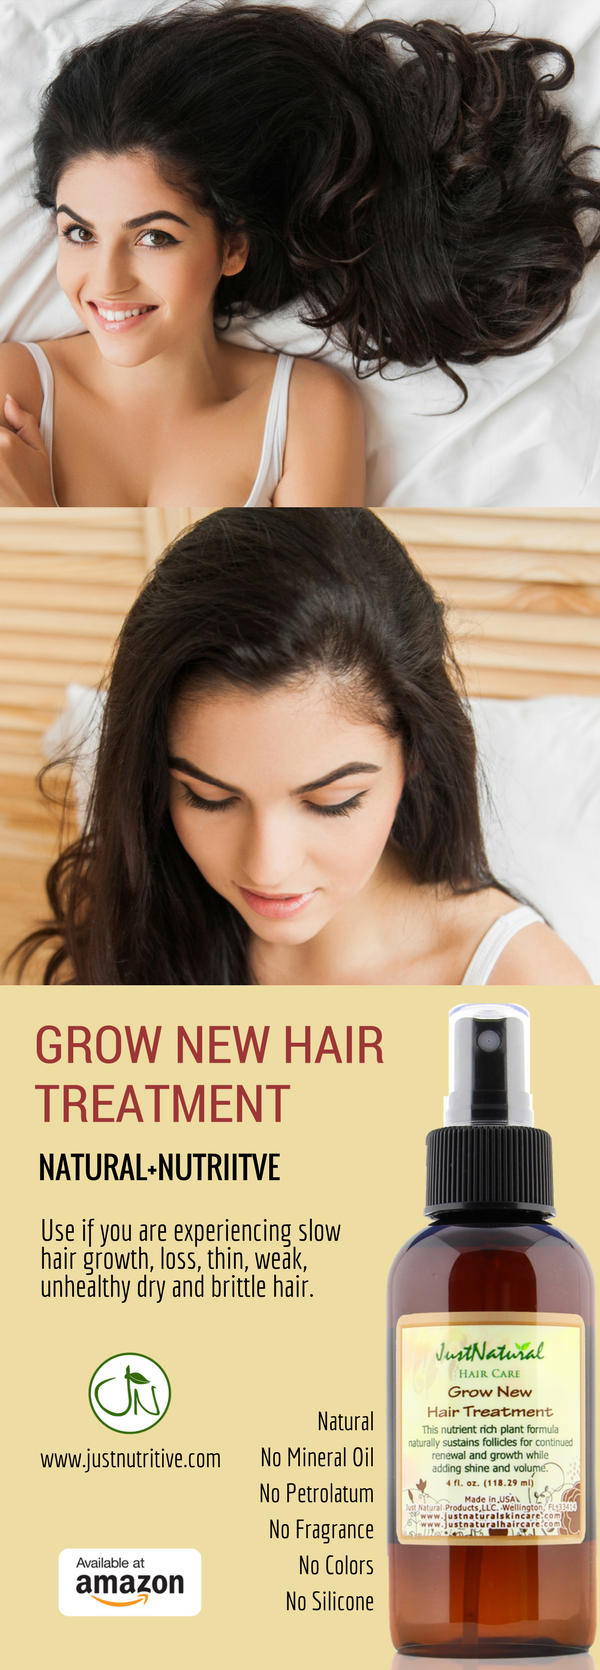 Use If You Are Experiencing Slow Hair Growth Loss Thin Weak Unhealthy Dry And Brittle Hair Hair Treatment Healthy Hair Growth Promote Healthy Hair Growth